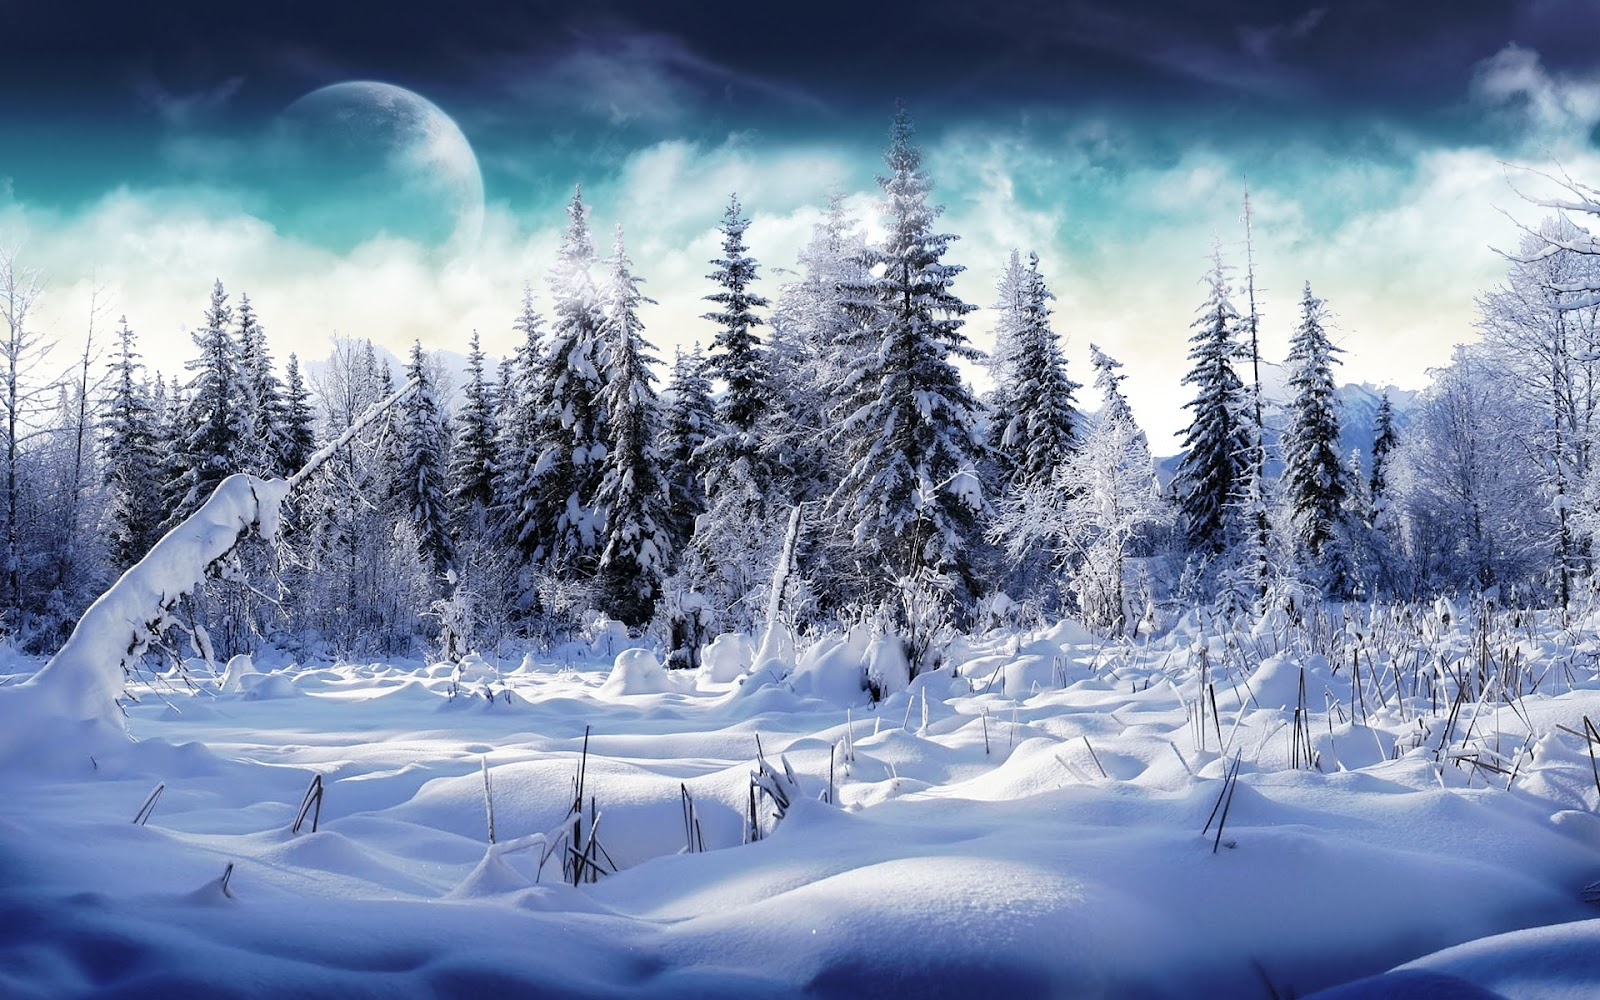 Top   Wallpaper Home Screen Winter - winter-wallpaper-33  Perfect Image Reference_46914.jpg